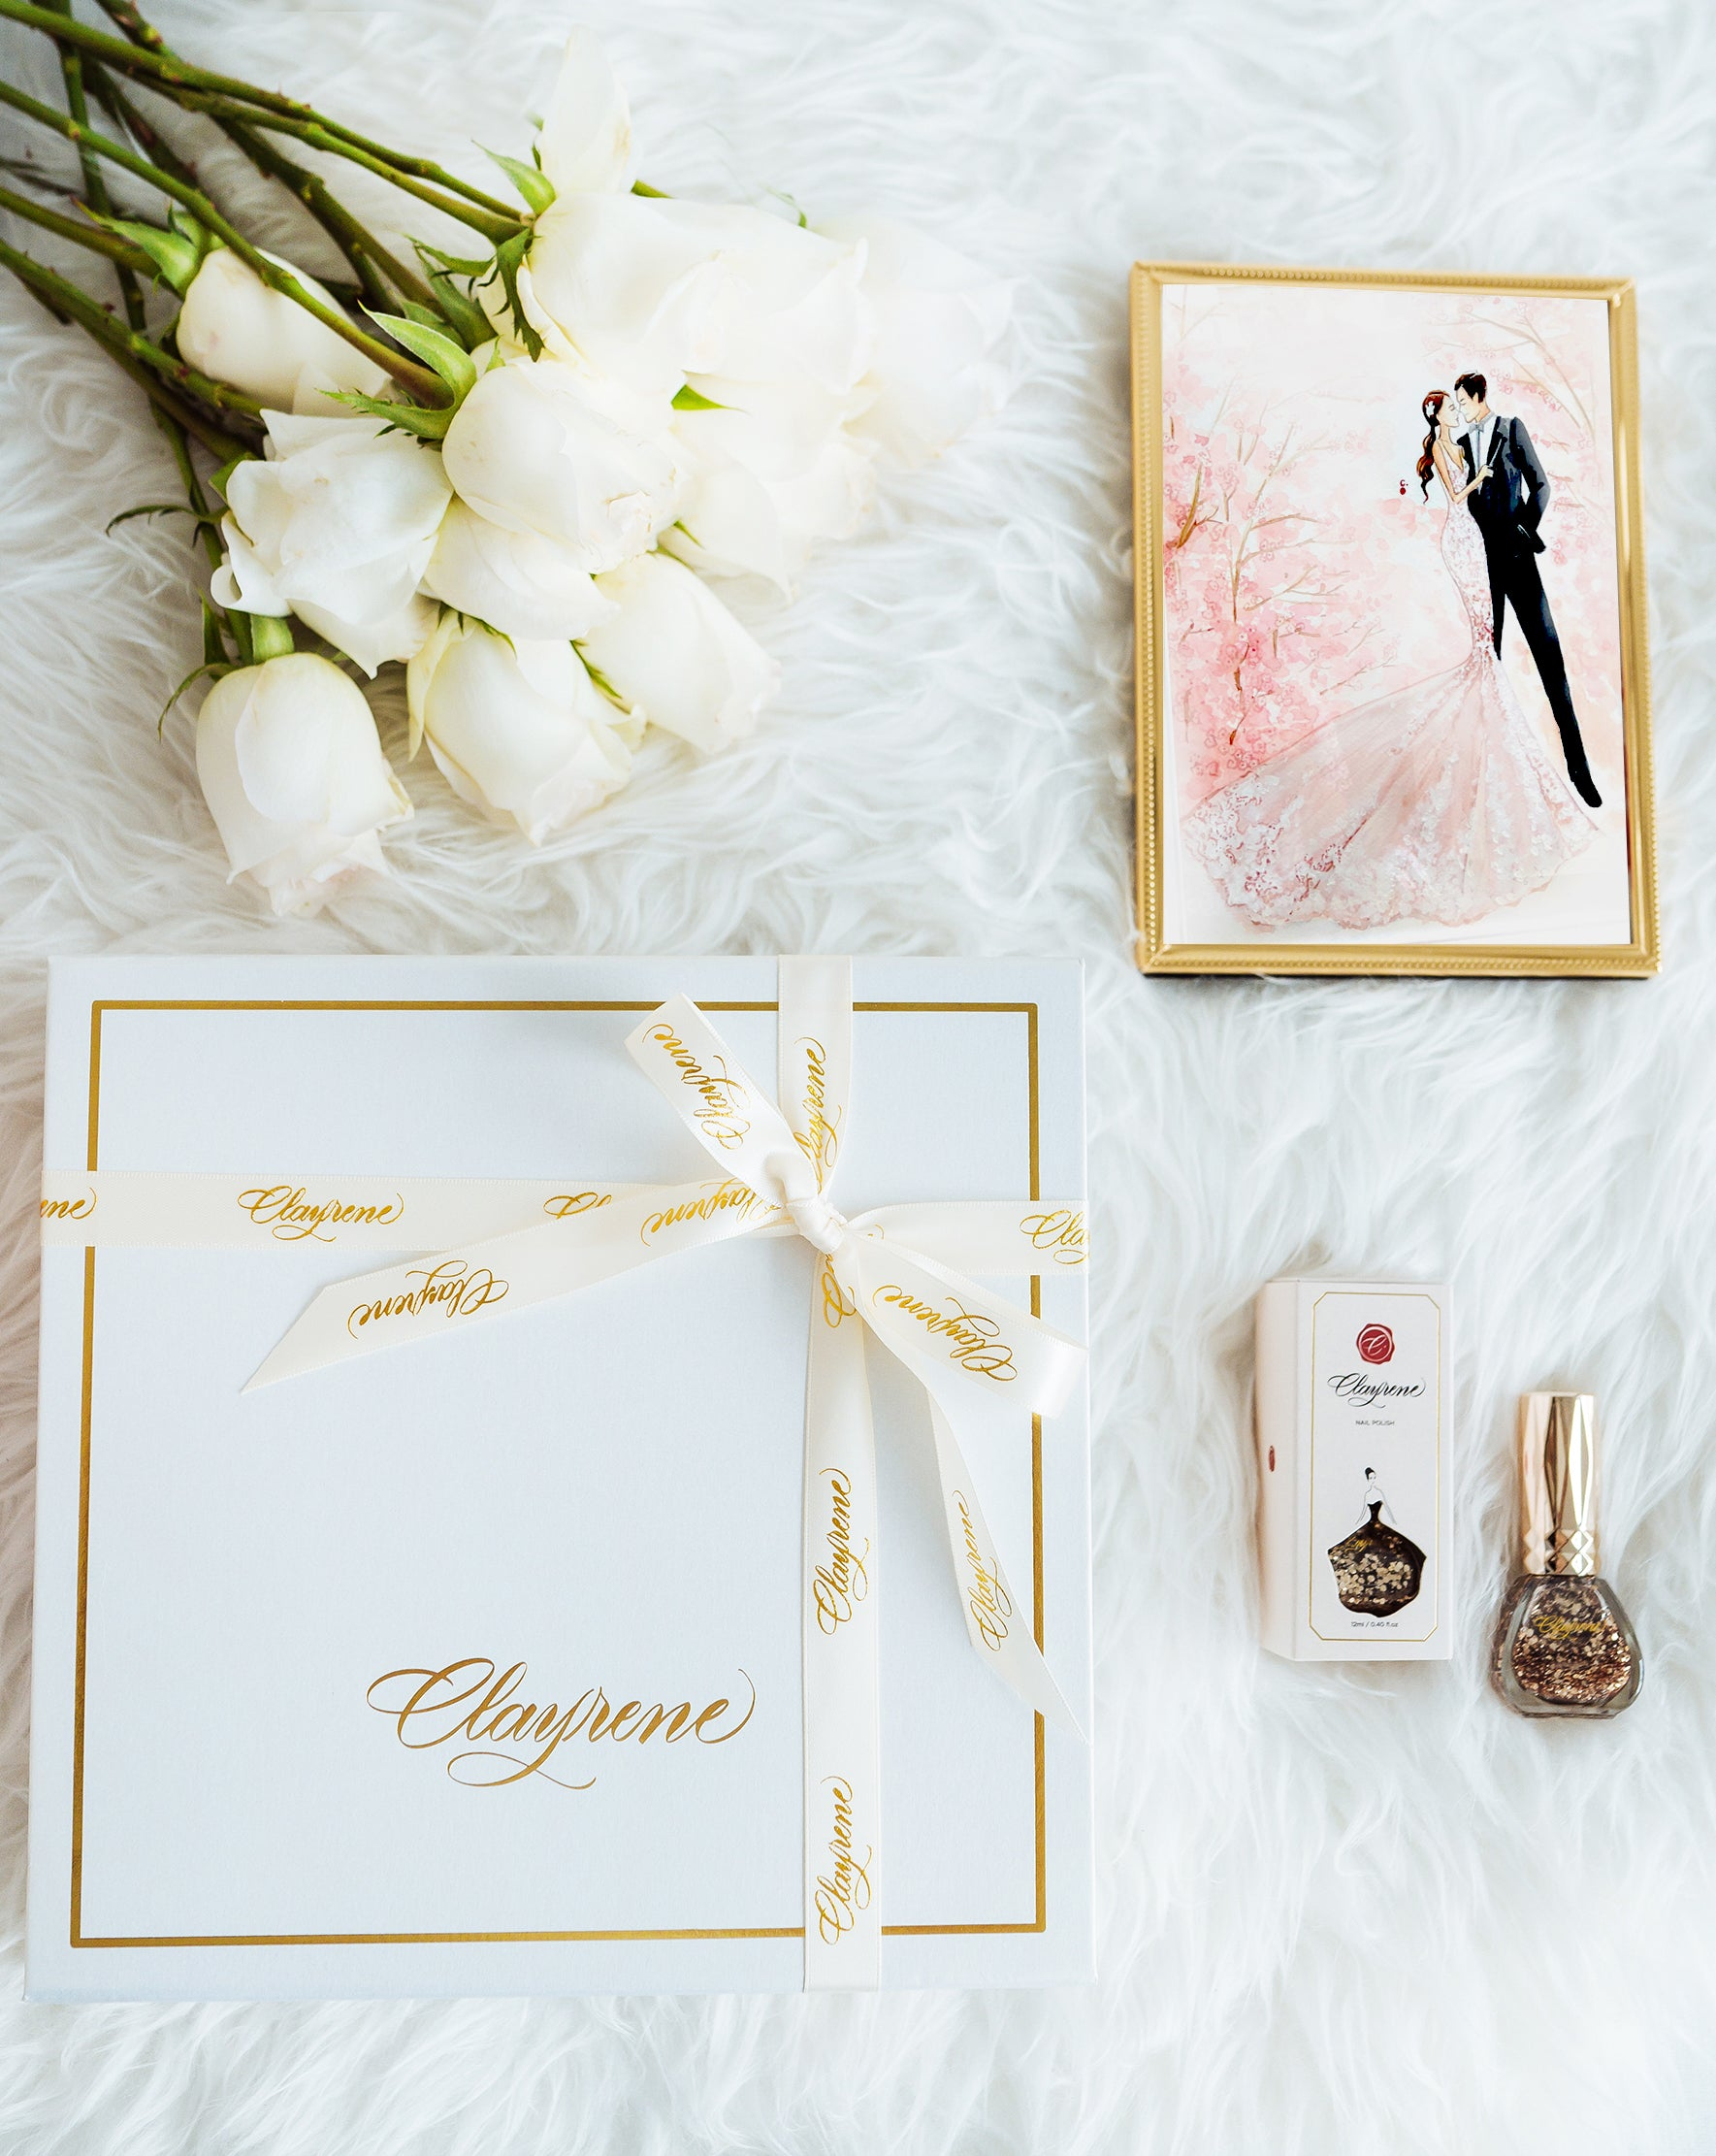 Full Custom Wedding Portrait Illustration (Couple) l Limited Edition Luxury Clayrene Gift Box Set